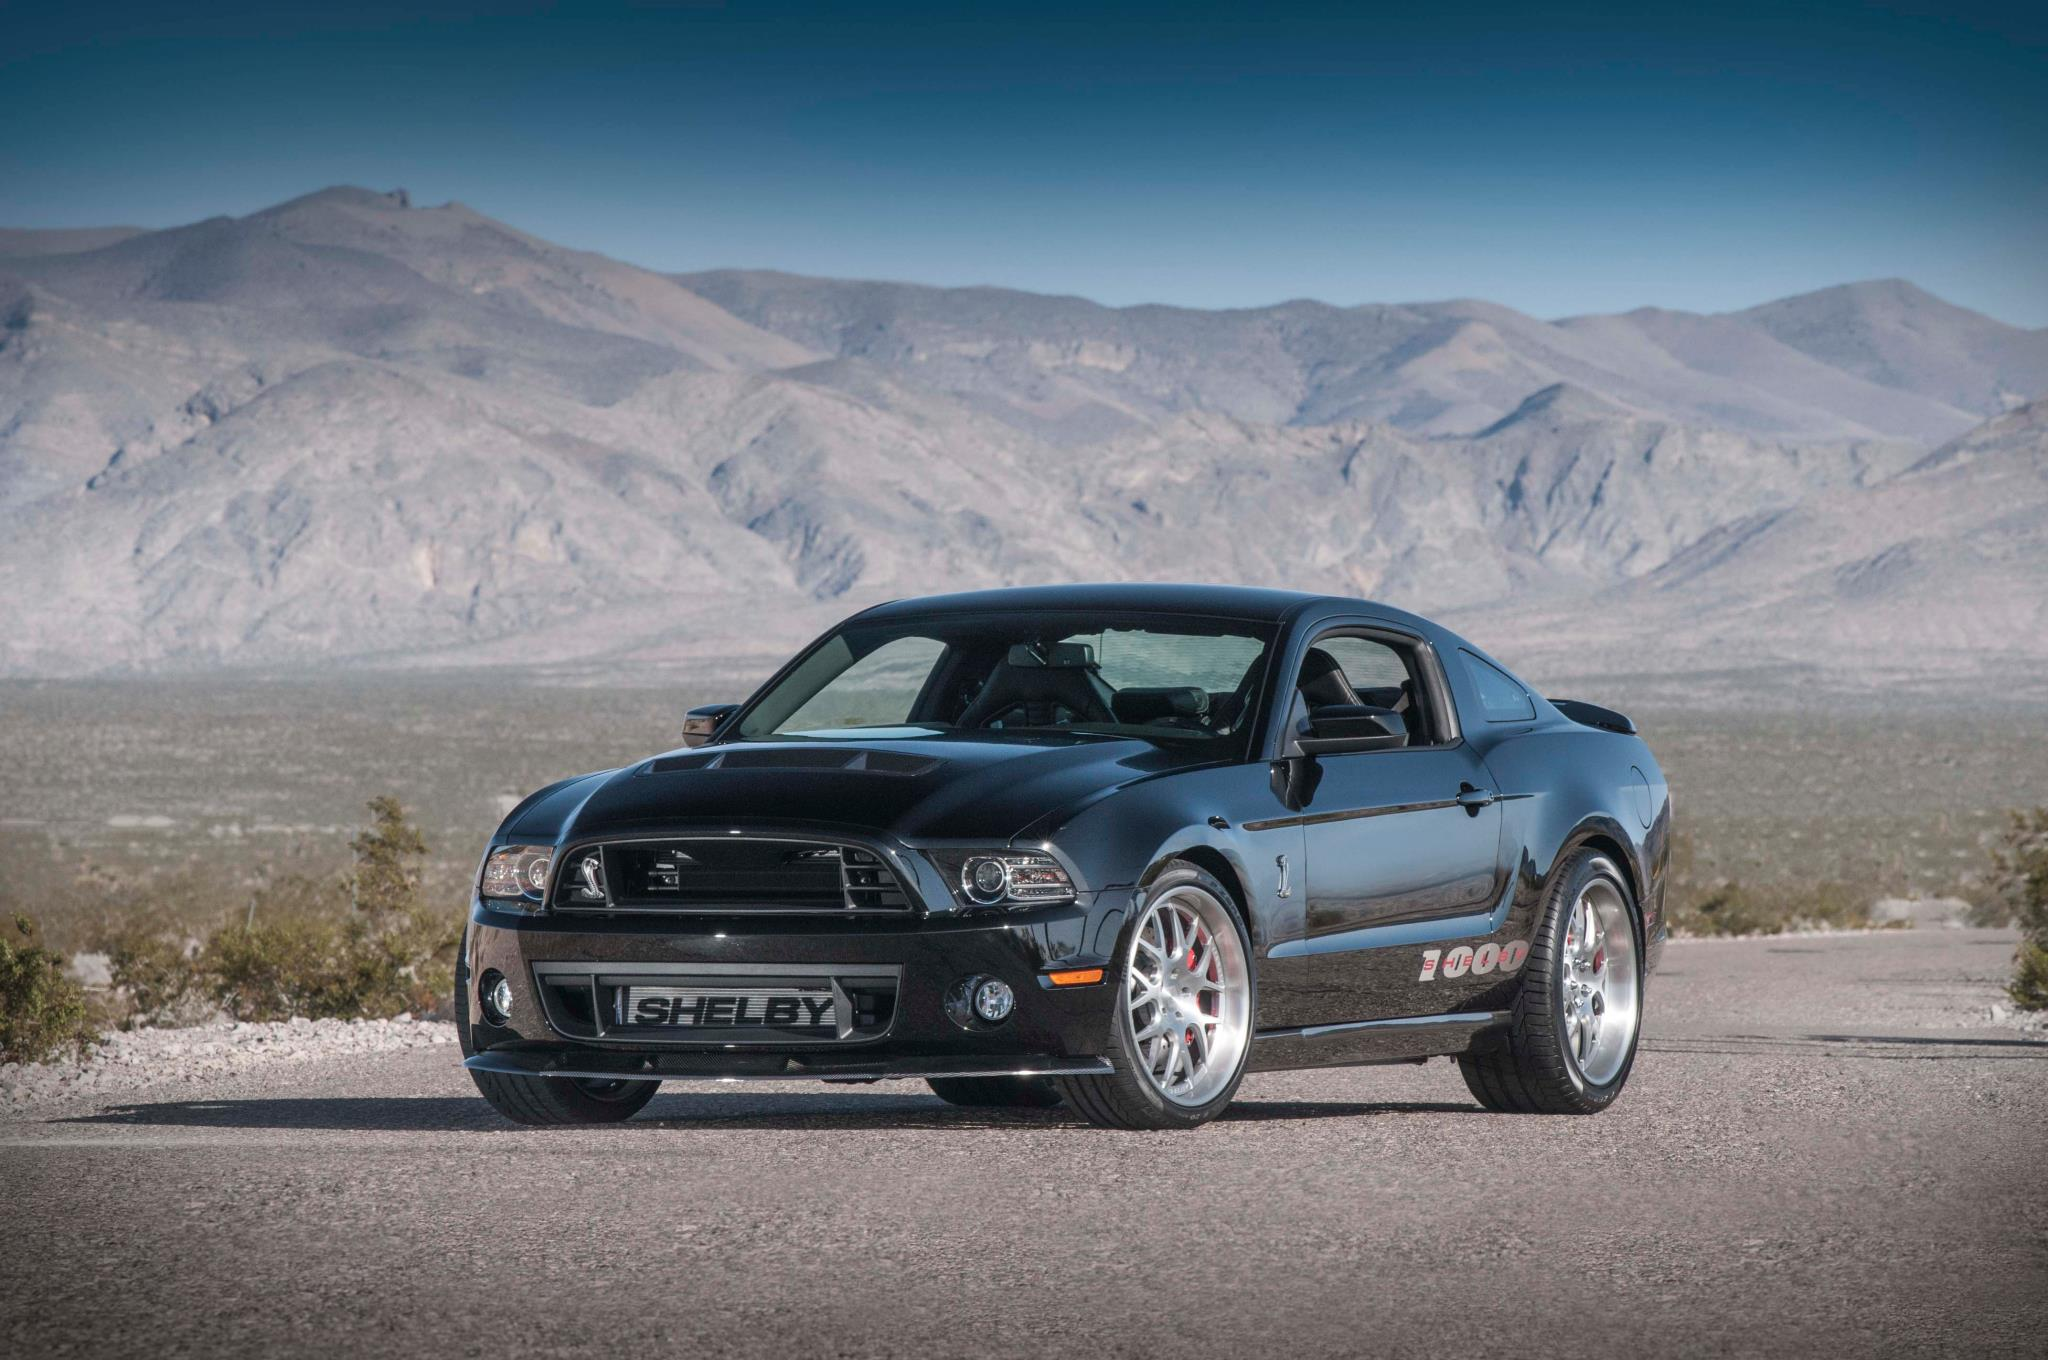 1,200-HP Shelby 1000 S/C: New York Auto Show Preview